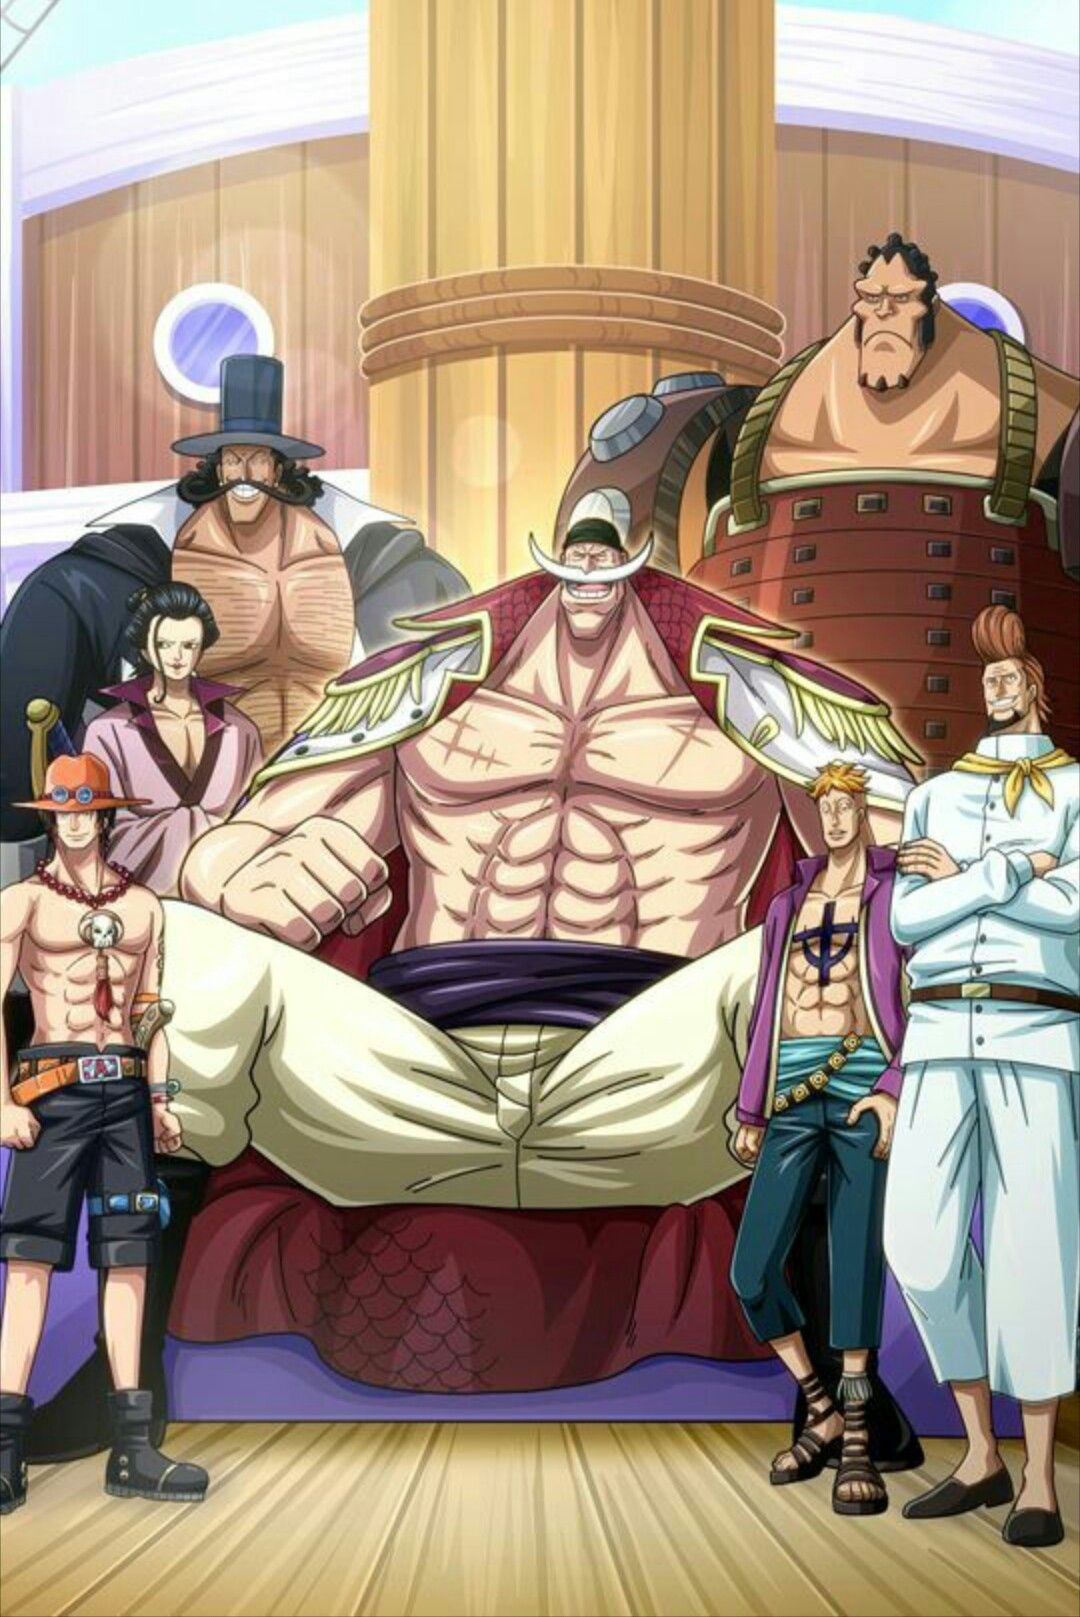 White Beard Family One Piece Onepiece Whitebeard One Piece Anime One Piece Comic One Piece Ace